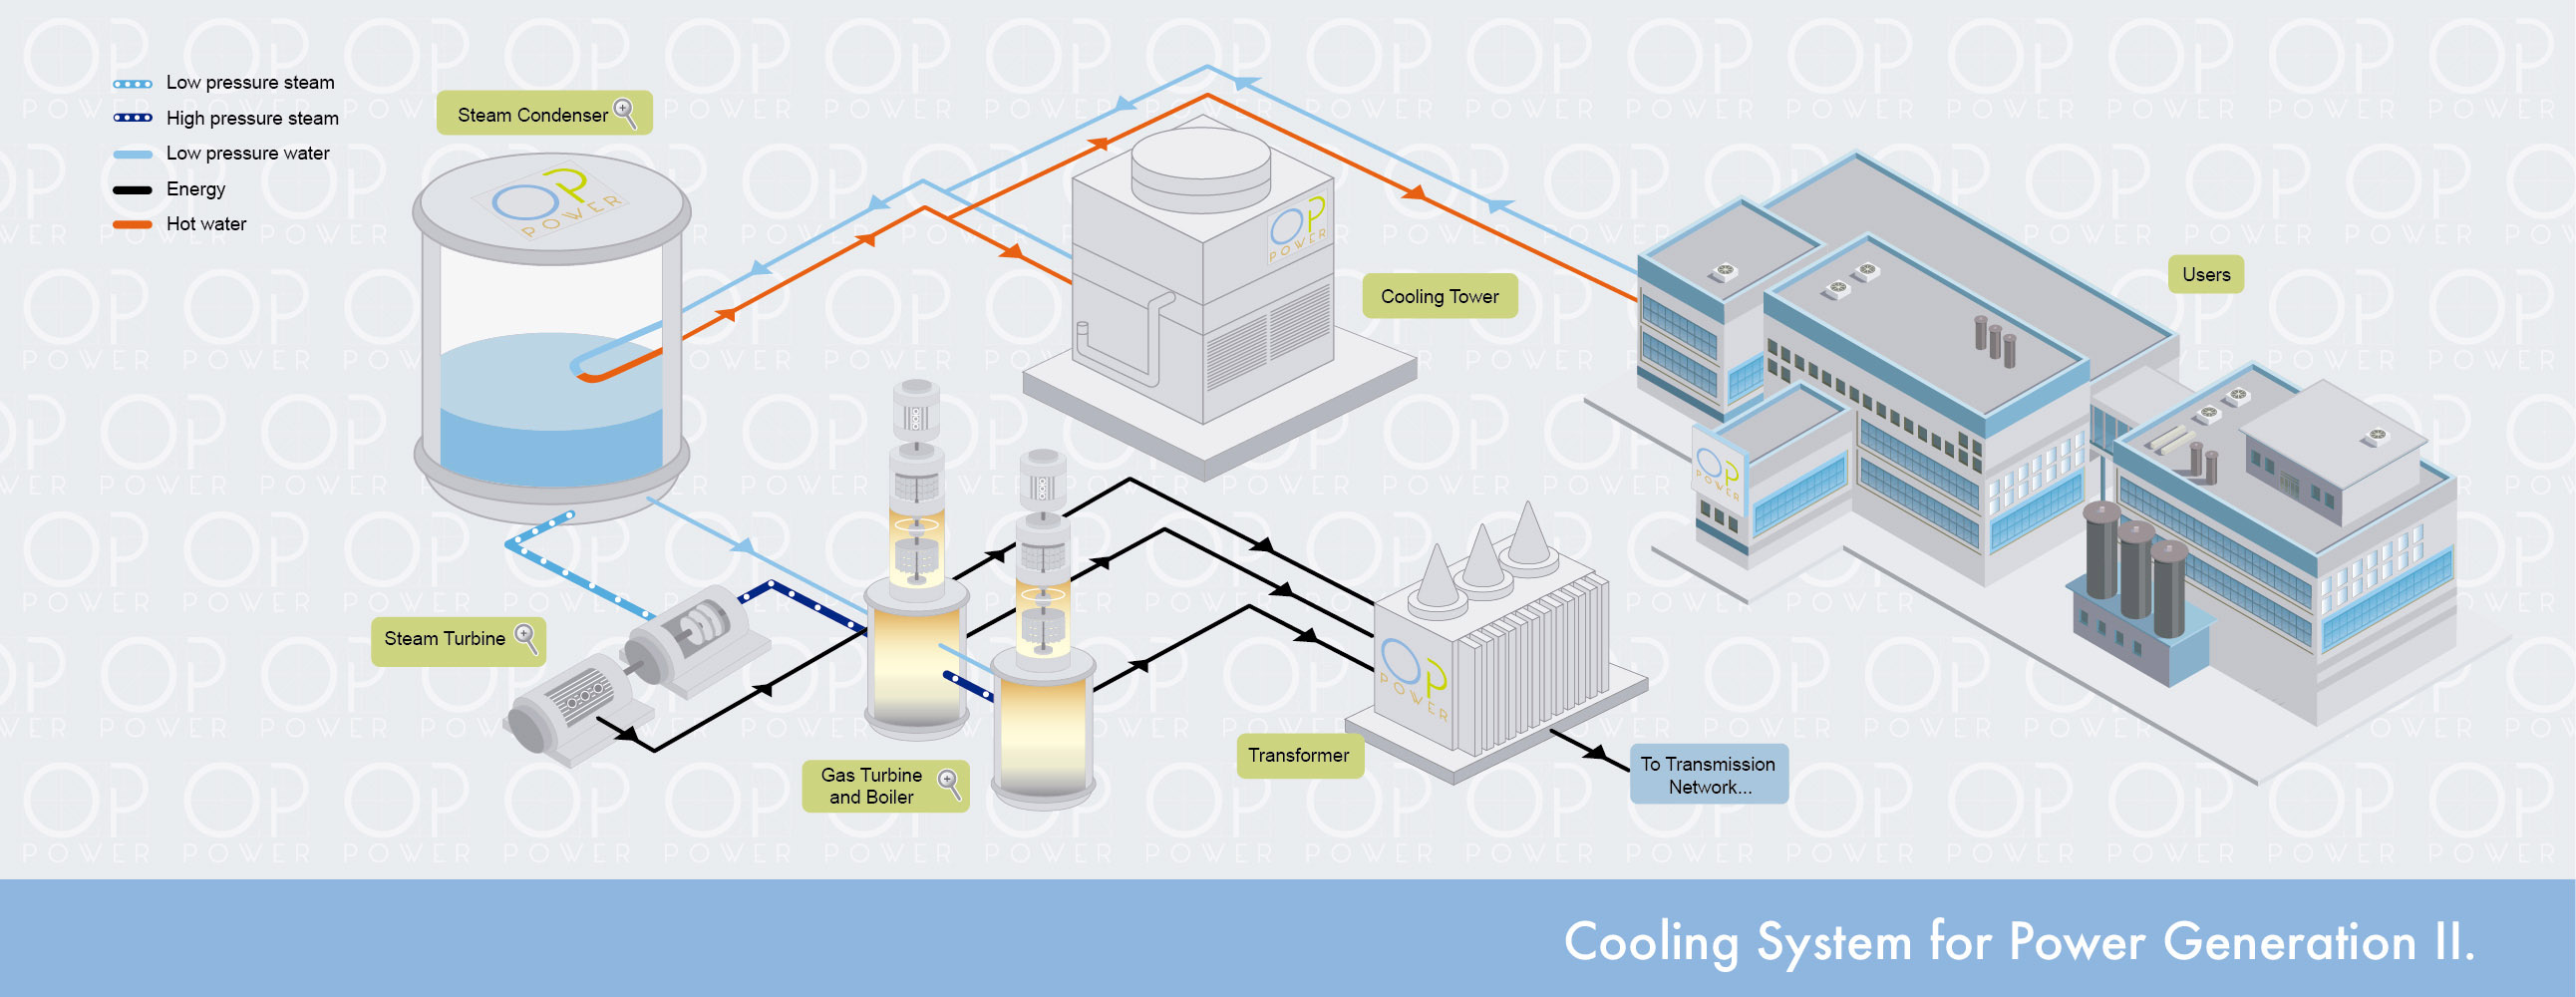 Cooling System Power Generation II